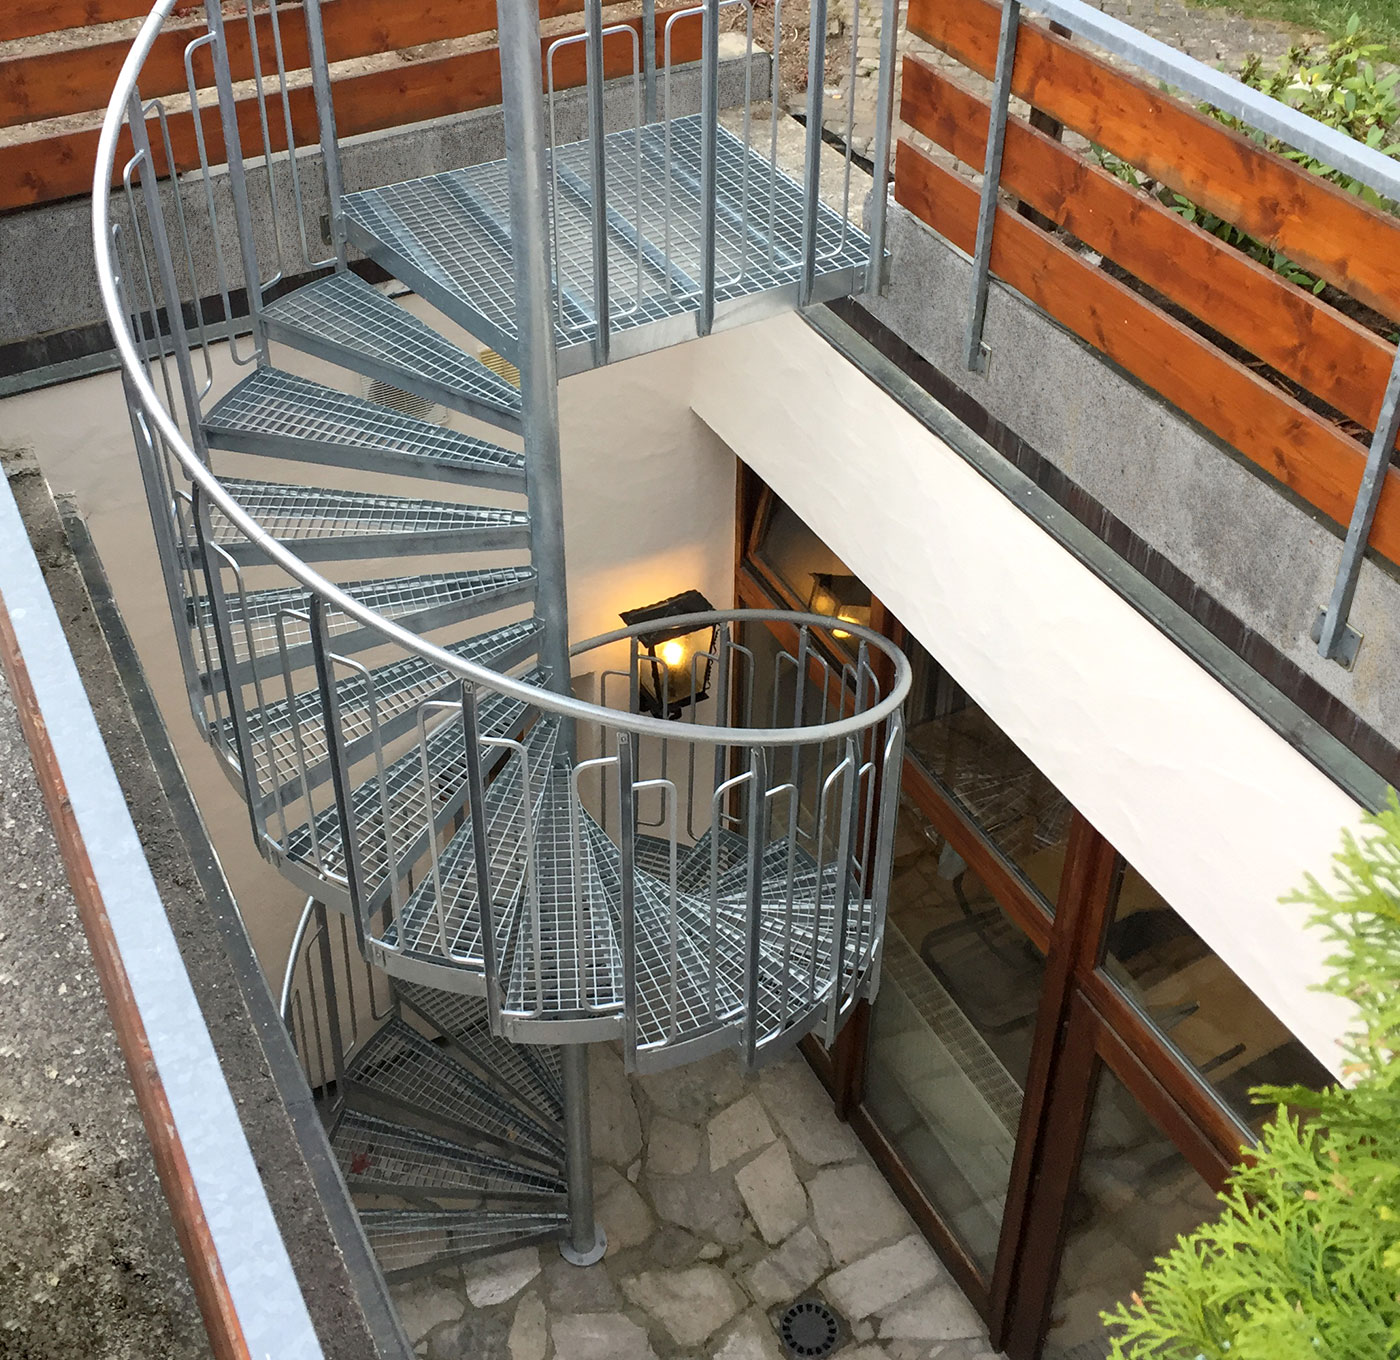 Spiral staircase with childsafe railing and steps of grating